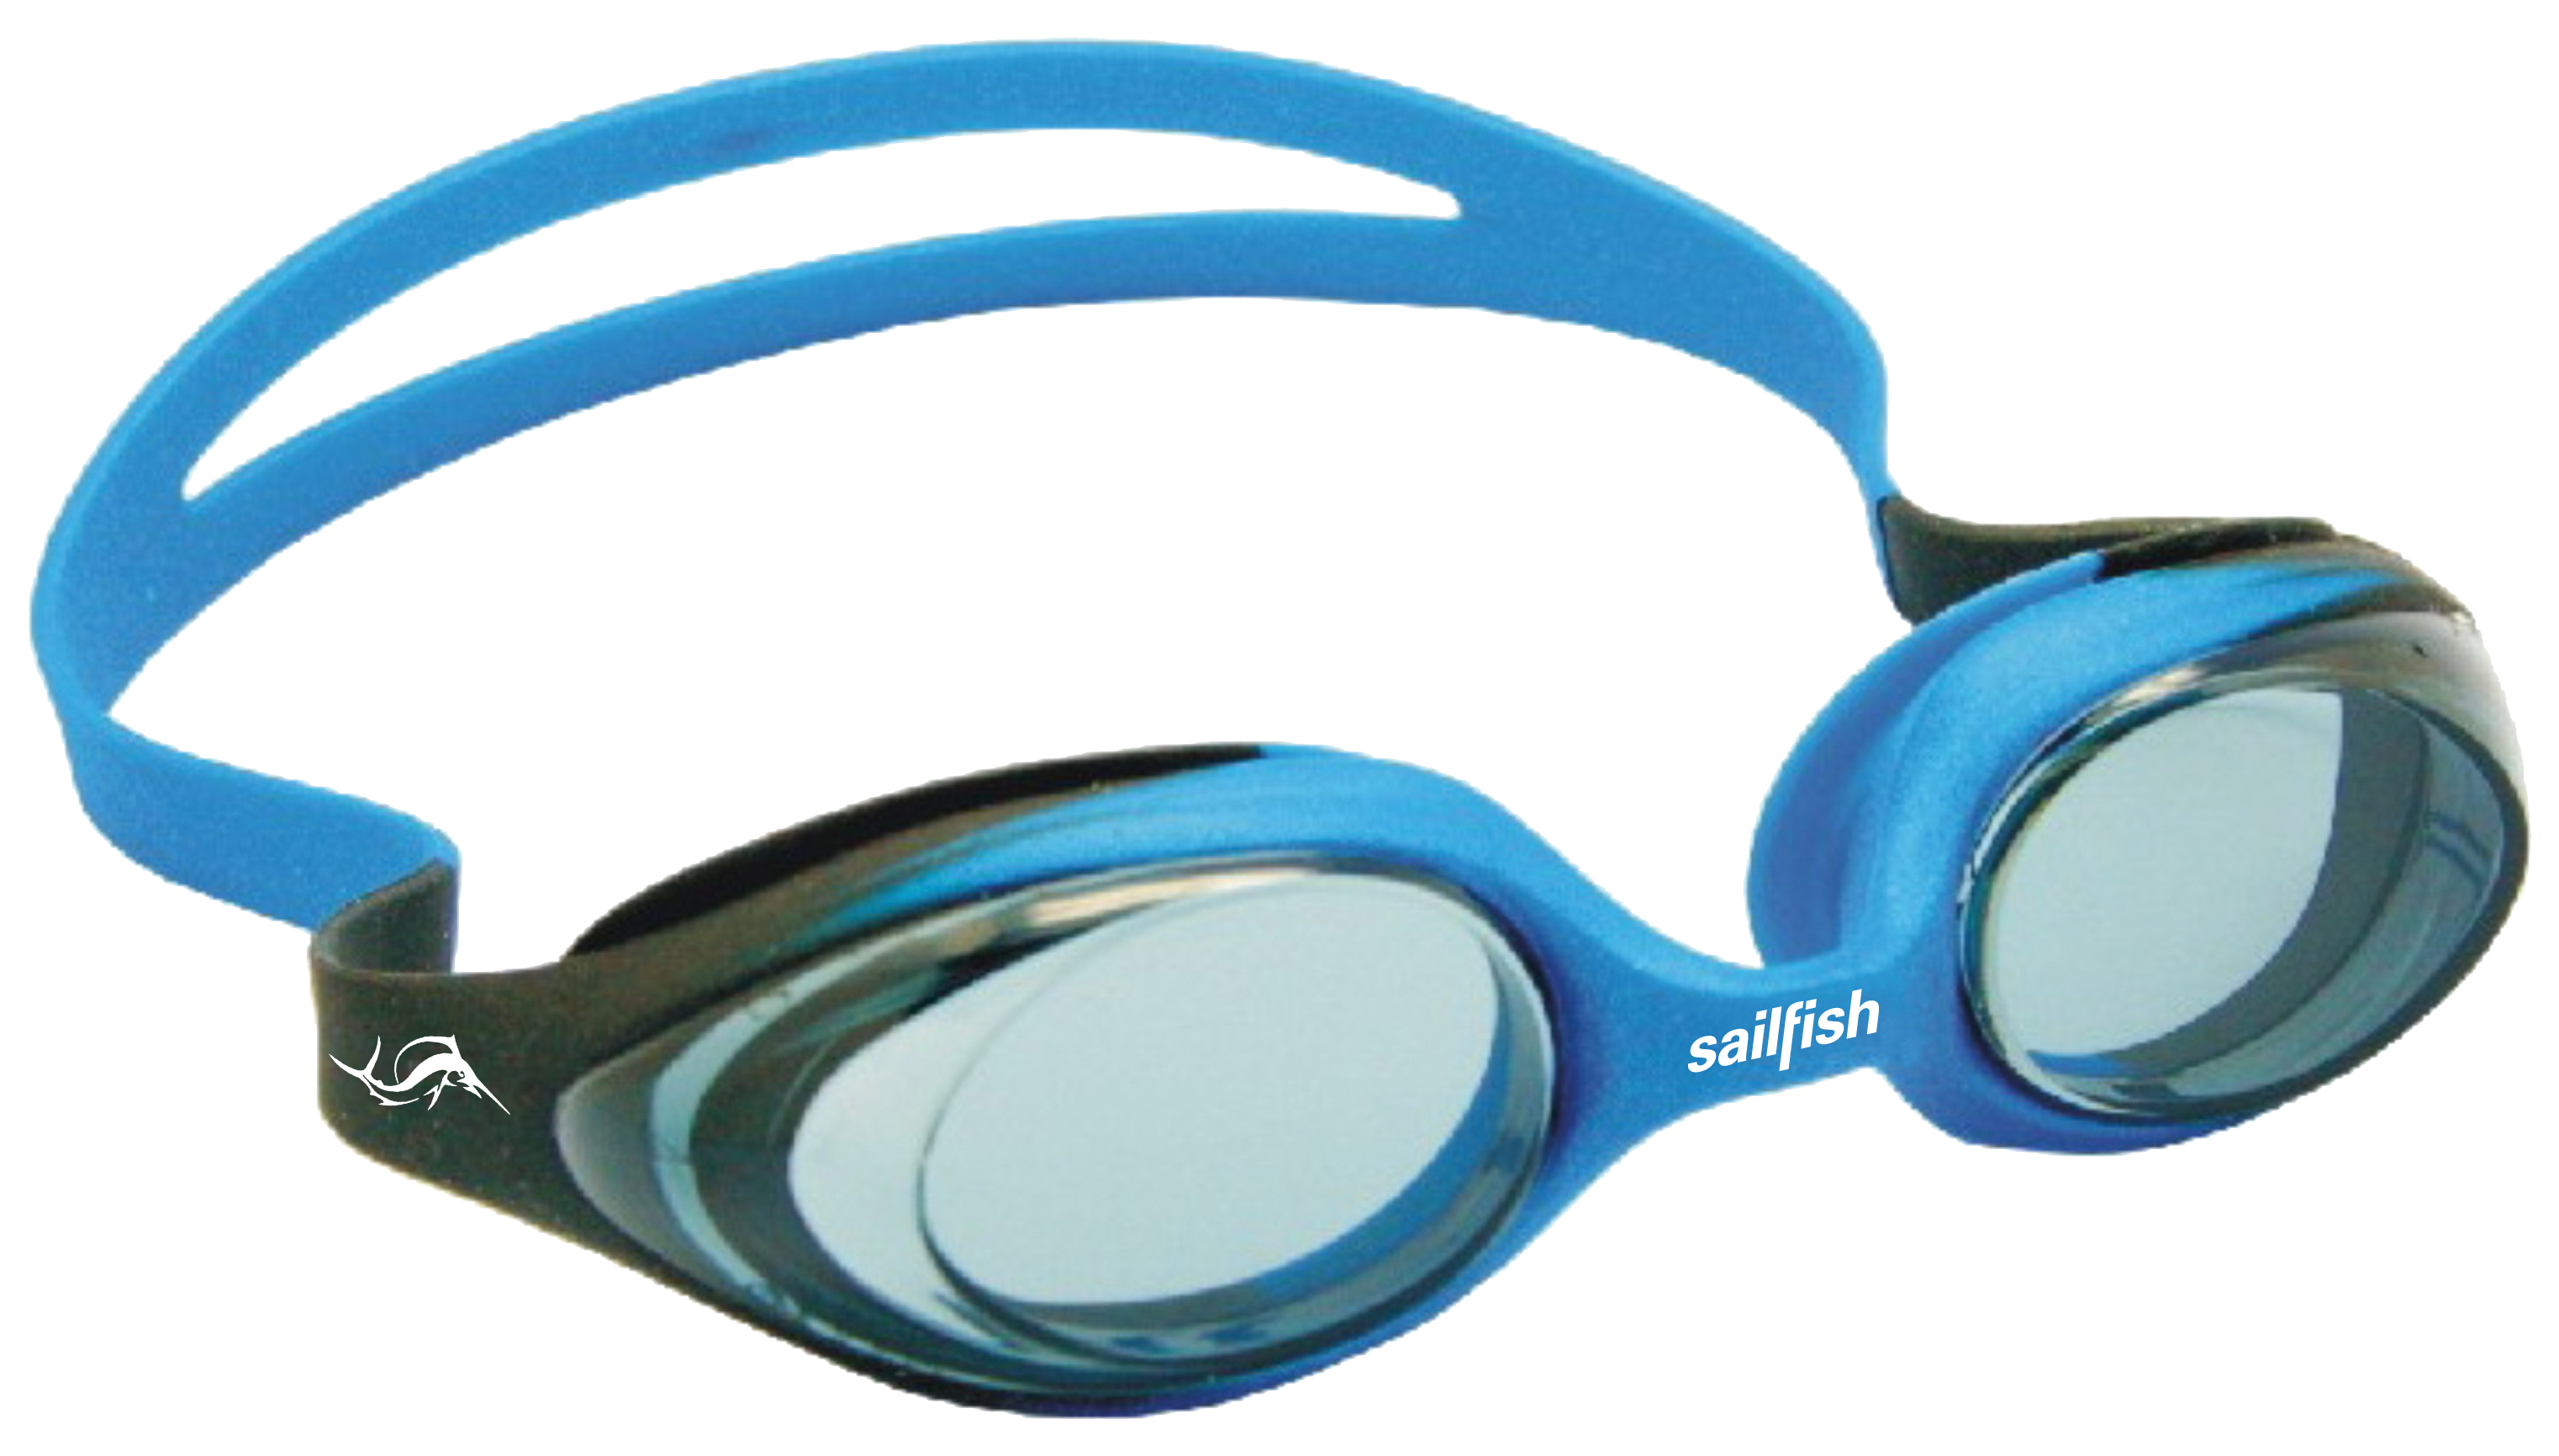 royalty free download Goggles clipart swimming equipment. Sailfish vector animated